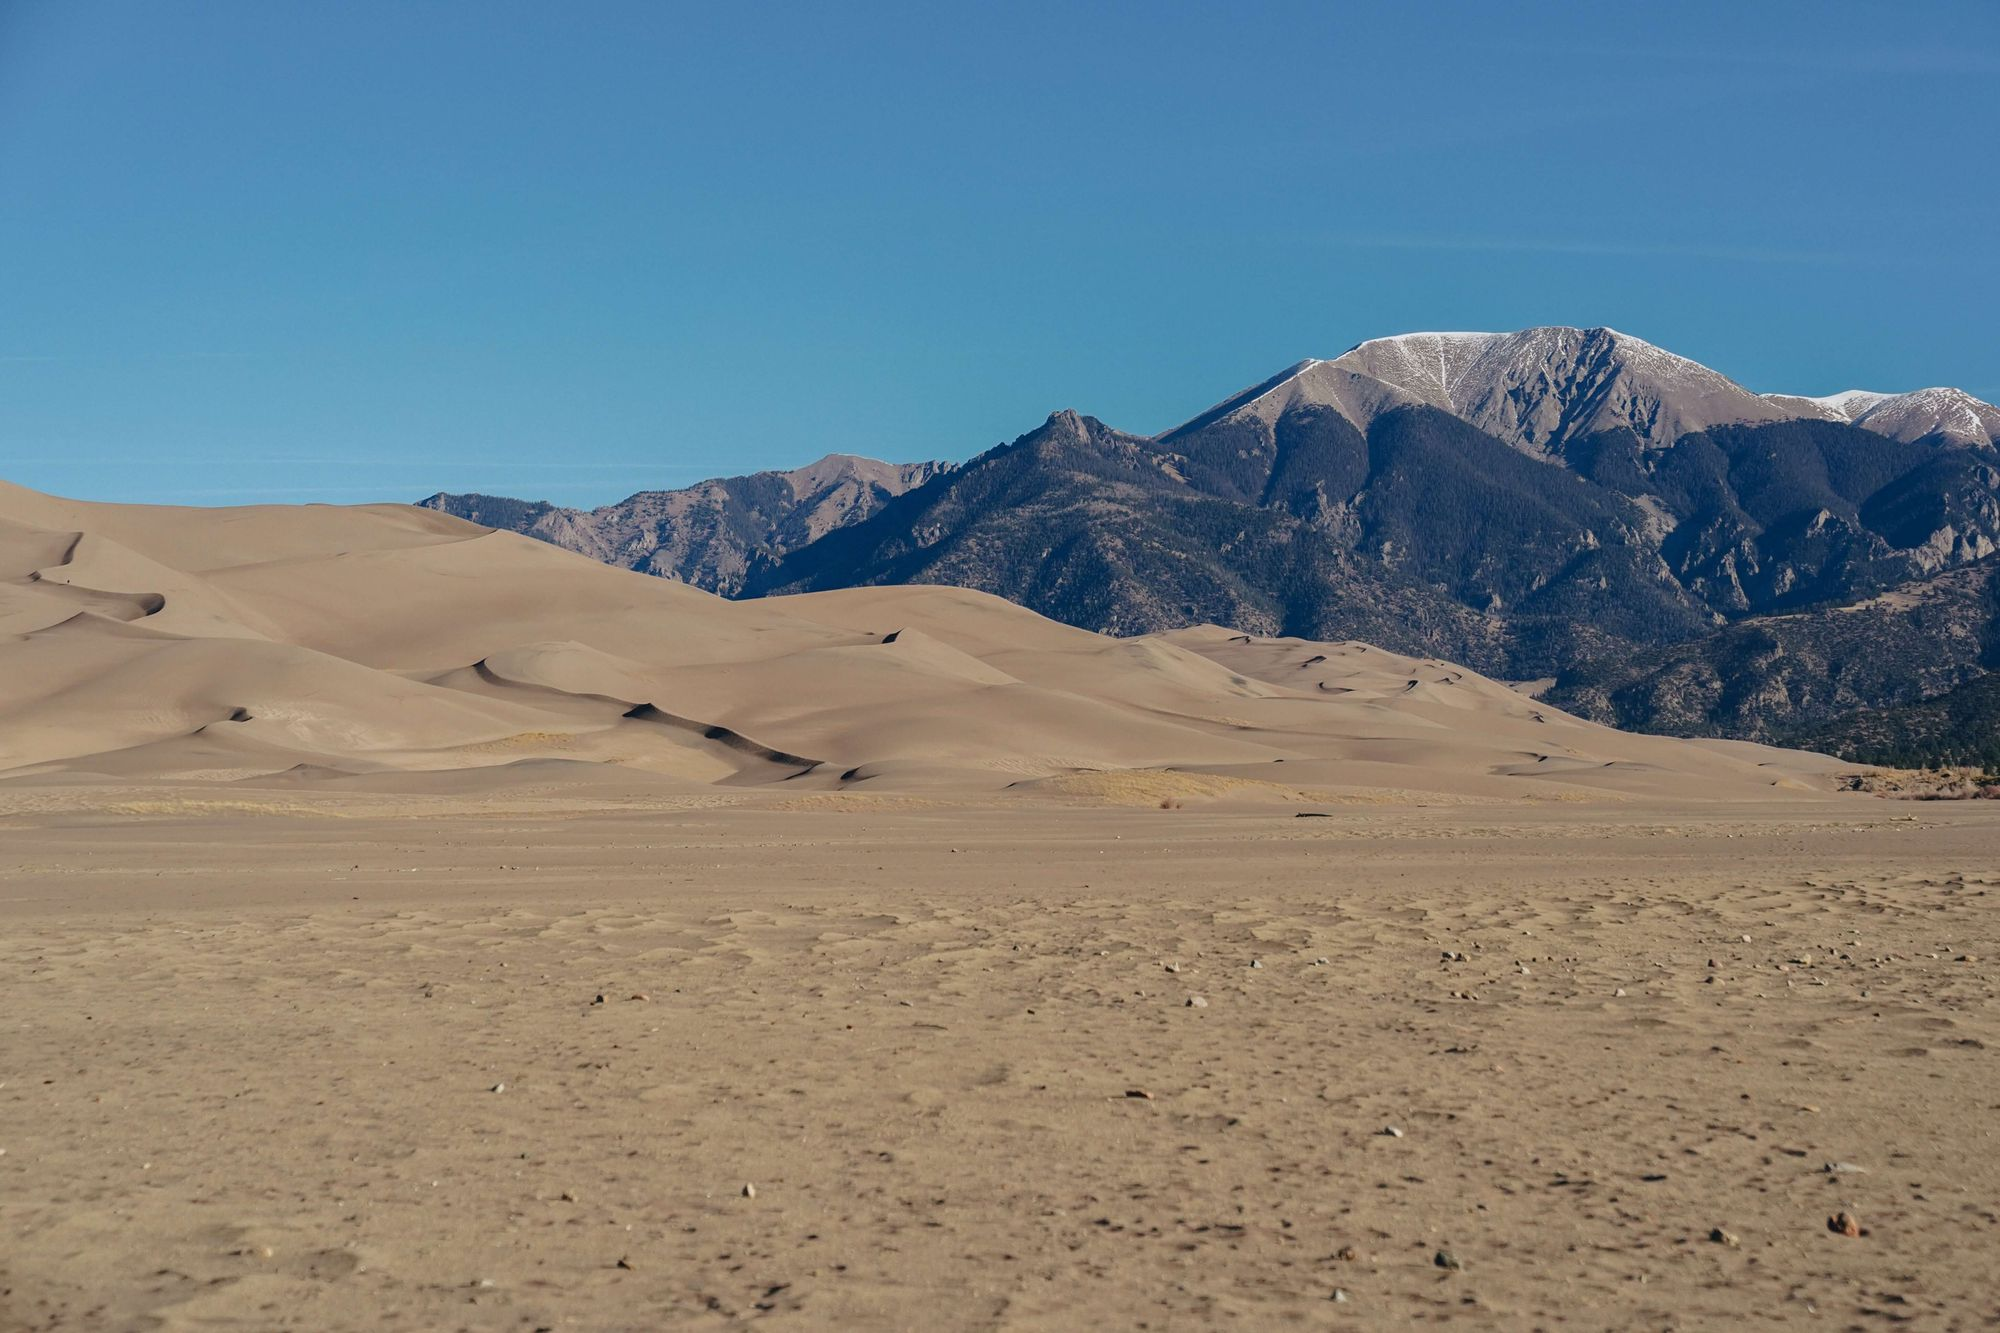 Great-Sand-Dunes-National-Park-and-Preserve-with-a-clear-blue-sky